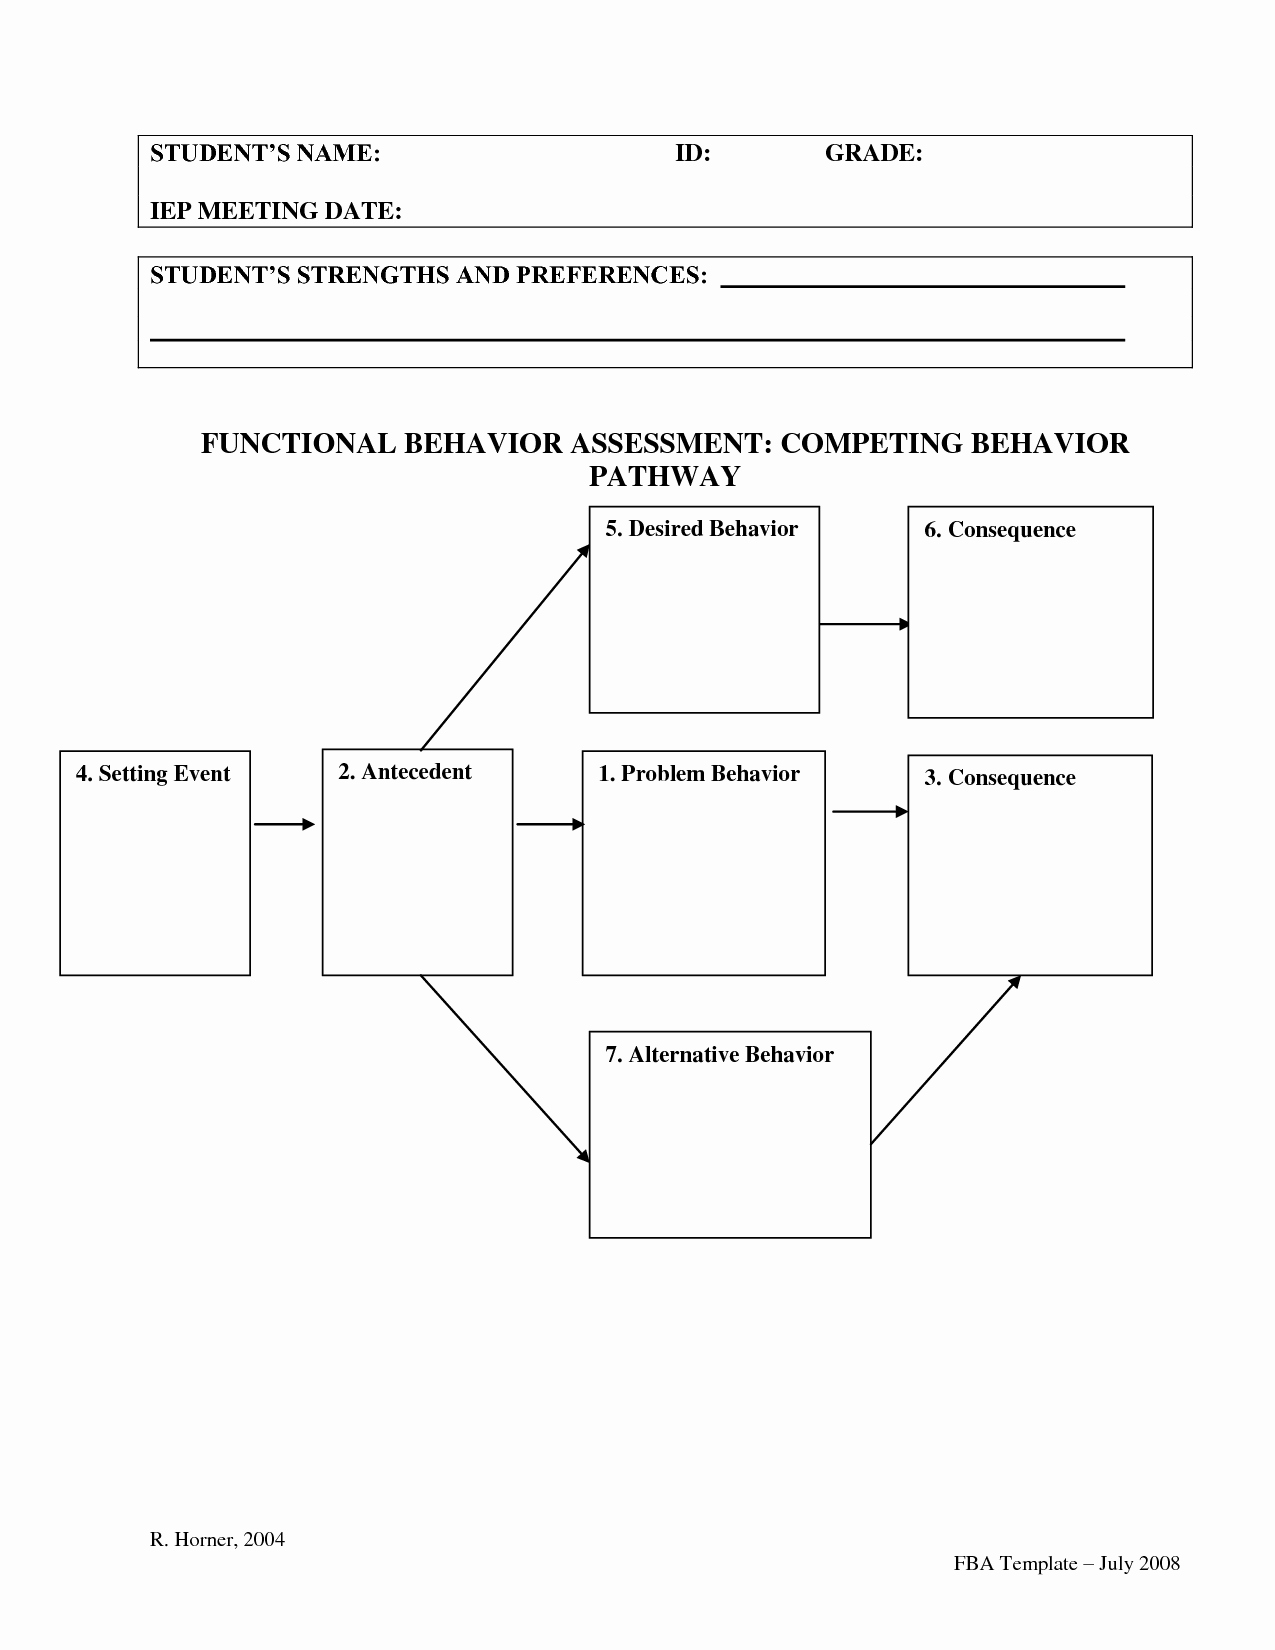 Positive Behavior Support Plan Template Inspirational Fba Templates Yahoo Image Search Results